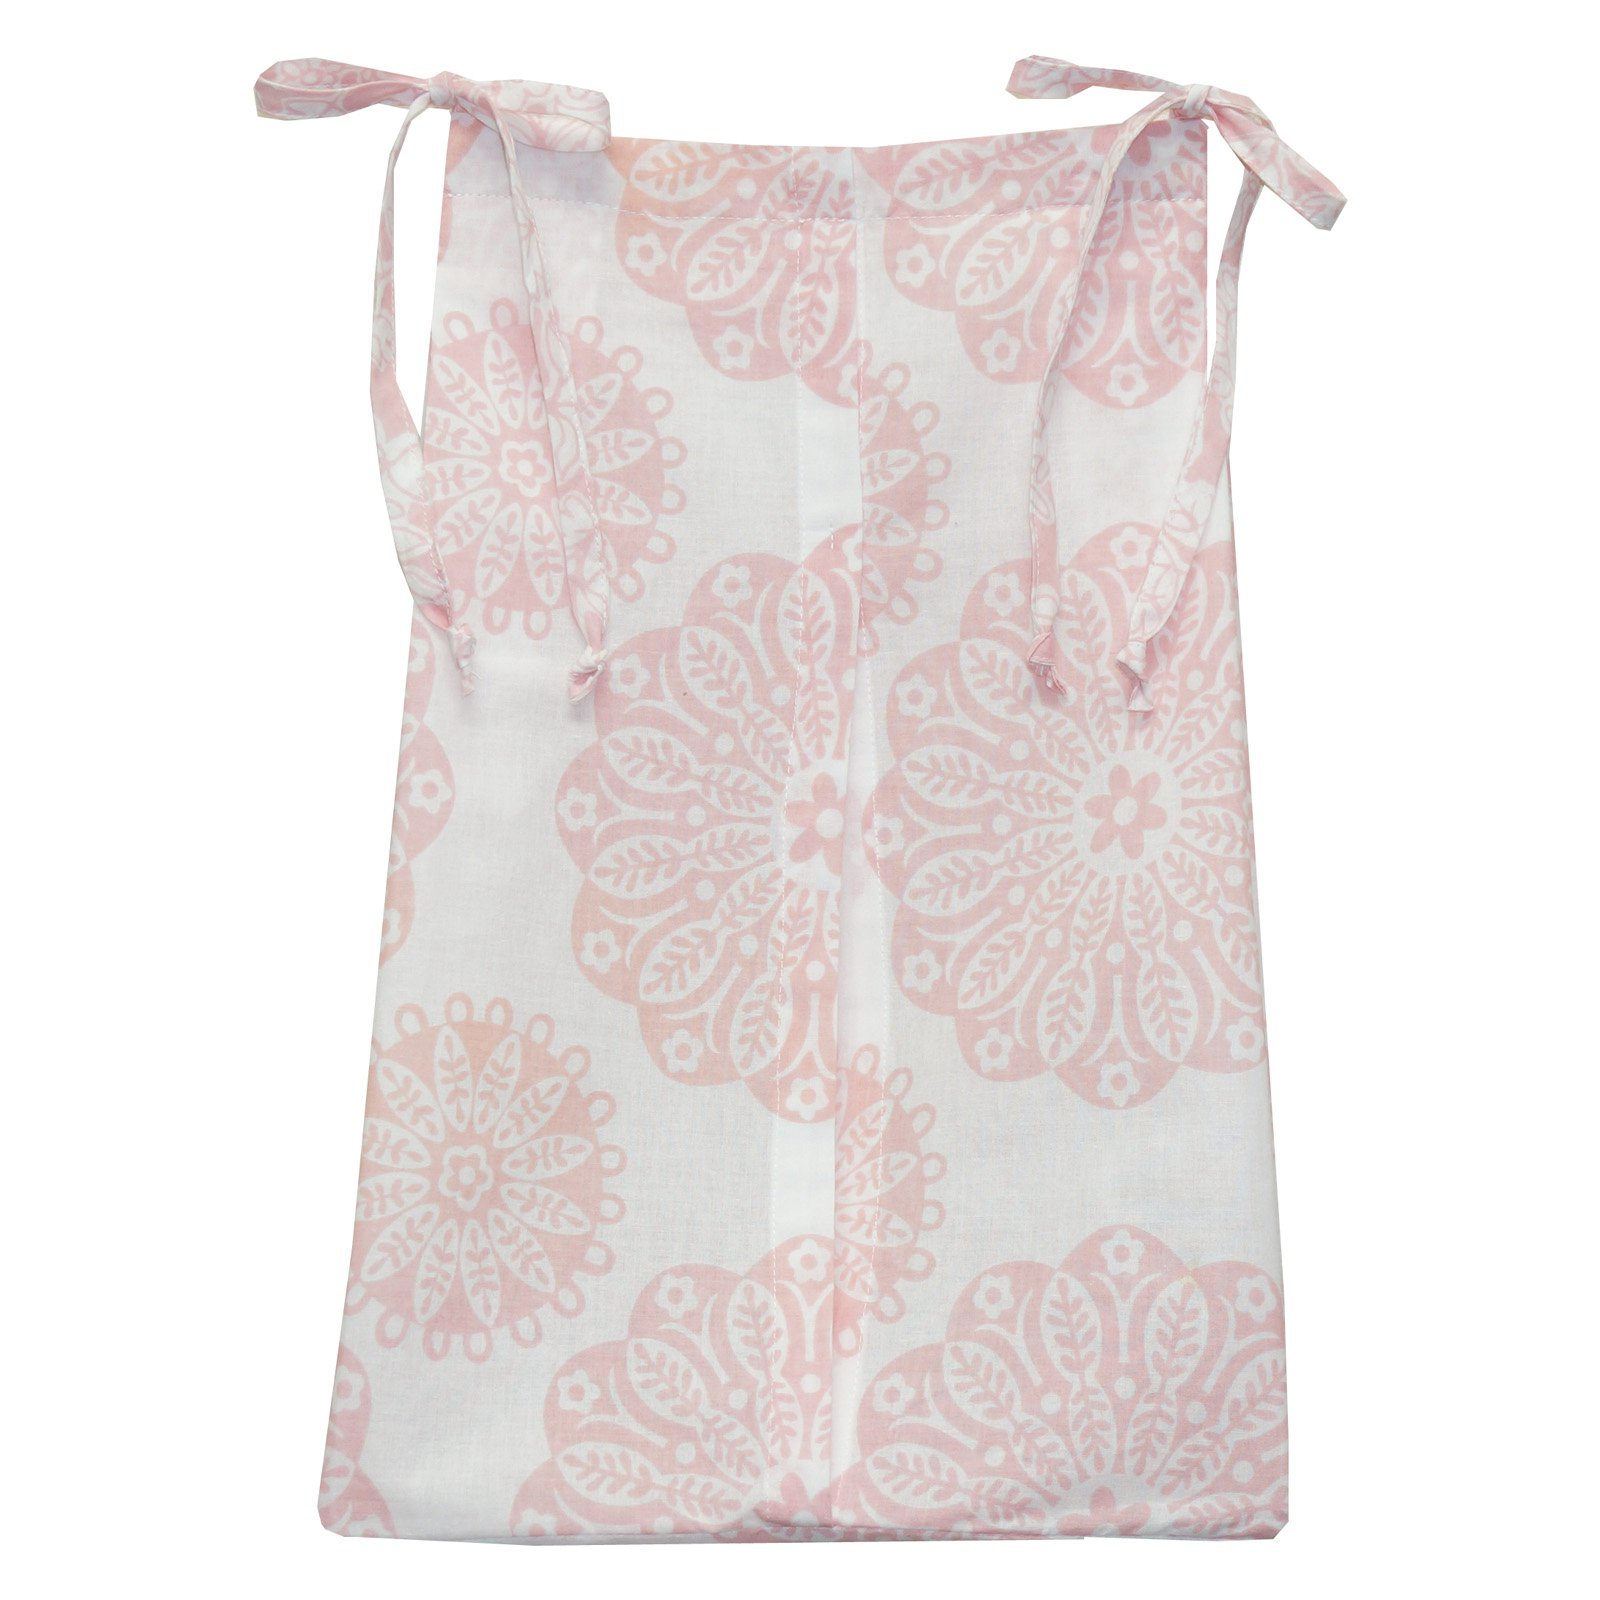 Sweet & Simple Pink Diaper Stacker by Cotton Tale Designs by Cotton Tale Designs